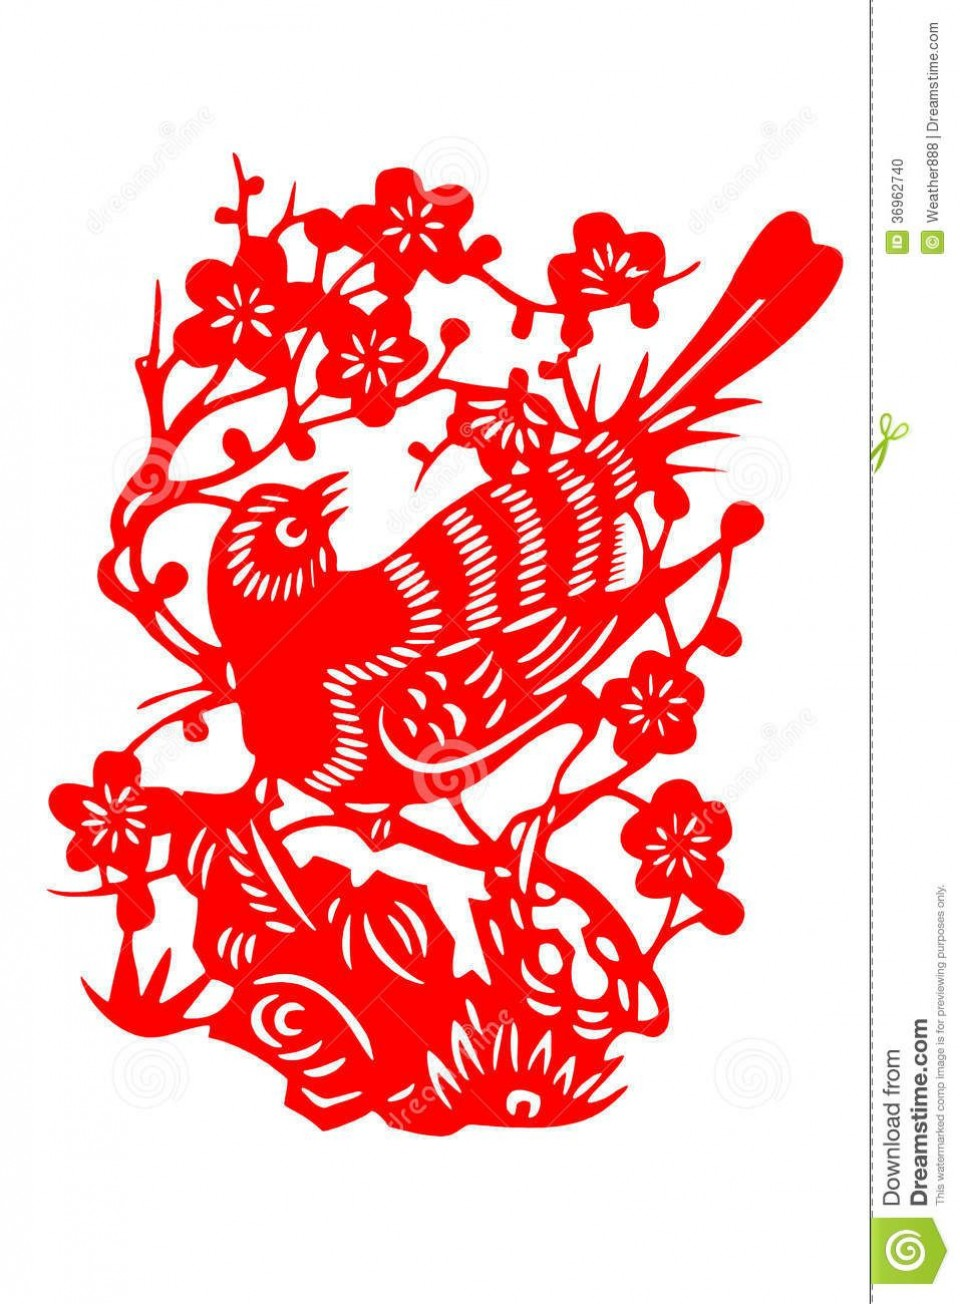 008 Top Chinese Paper Cut Template Concept 960